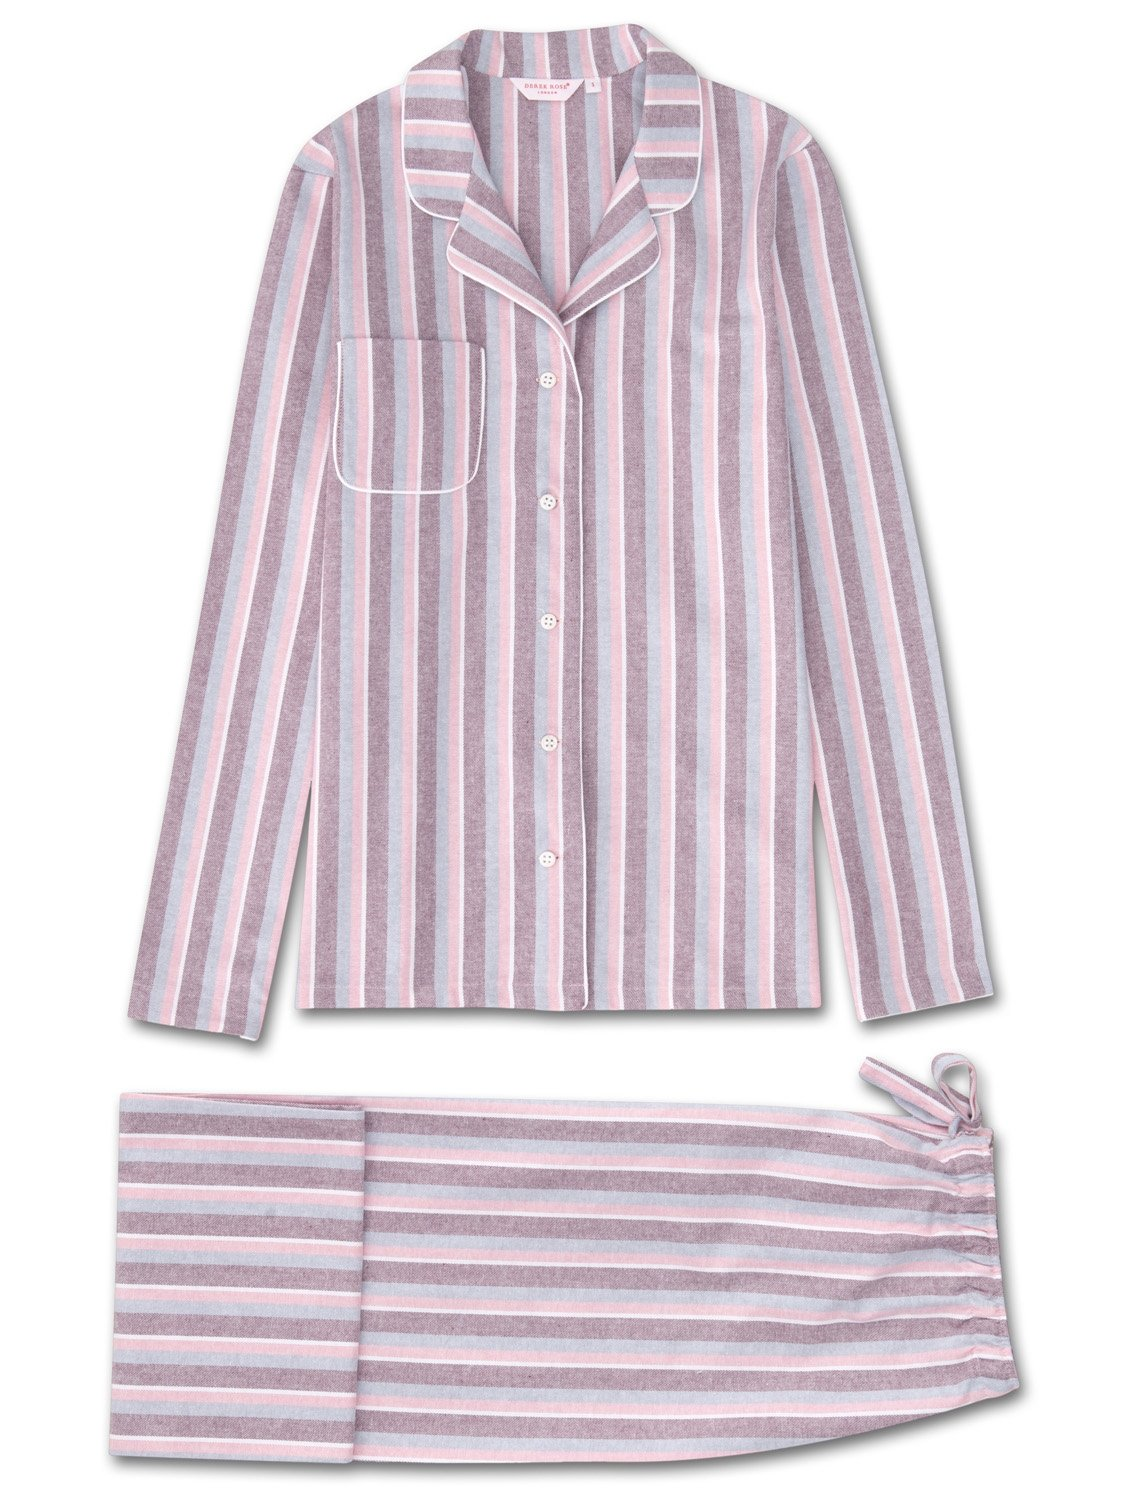 Women's Pyjamas Arran 87 Brushed Cotton Stripe Burgundy